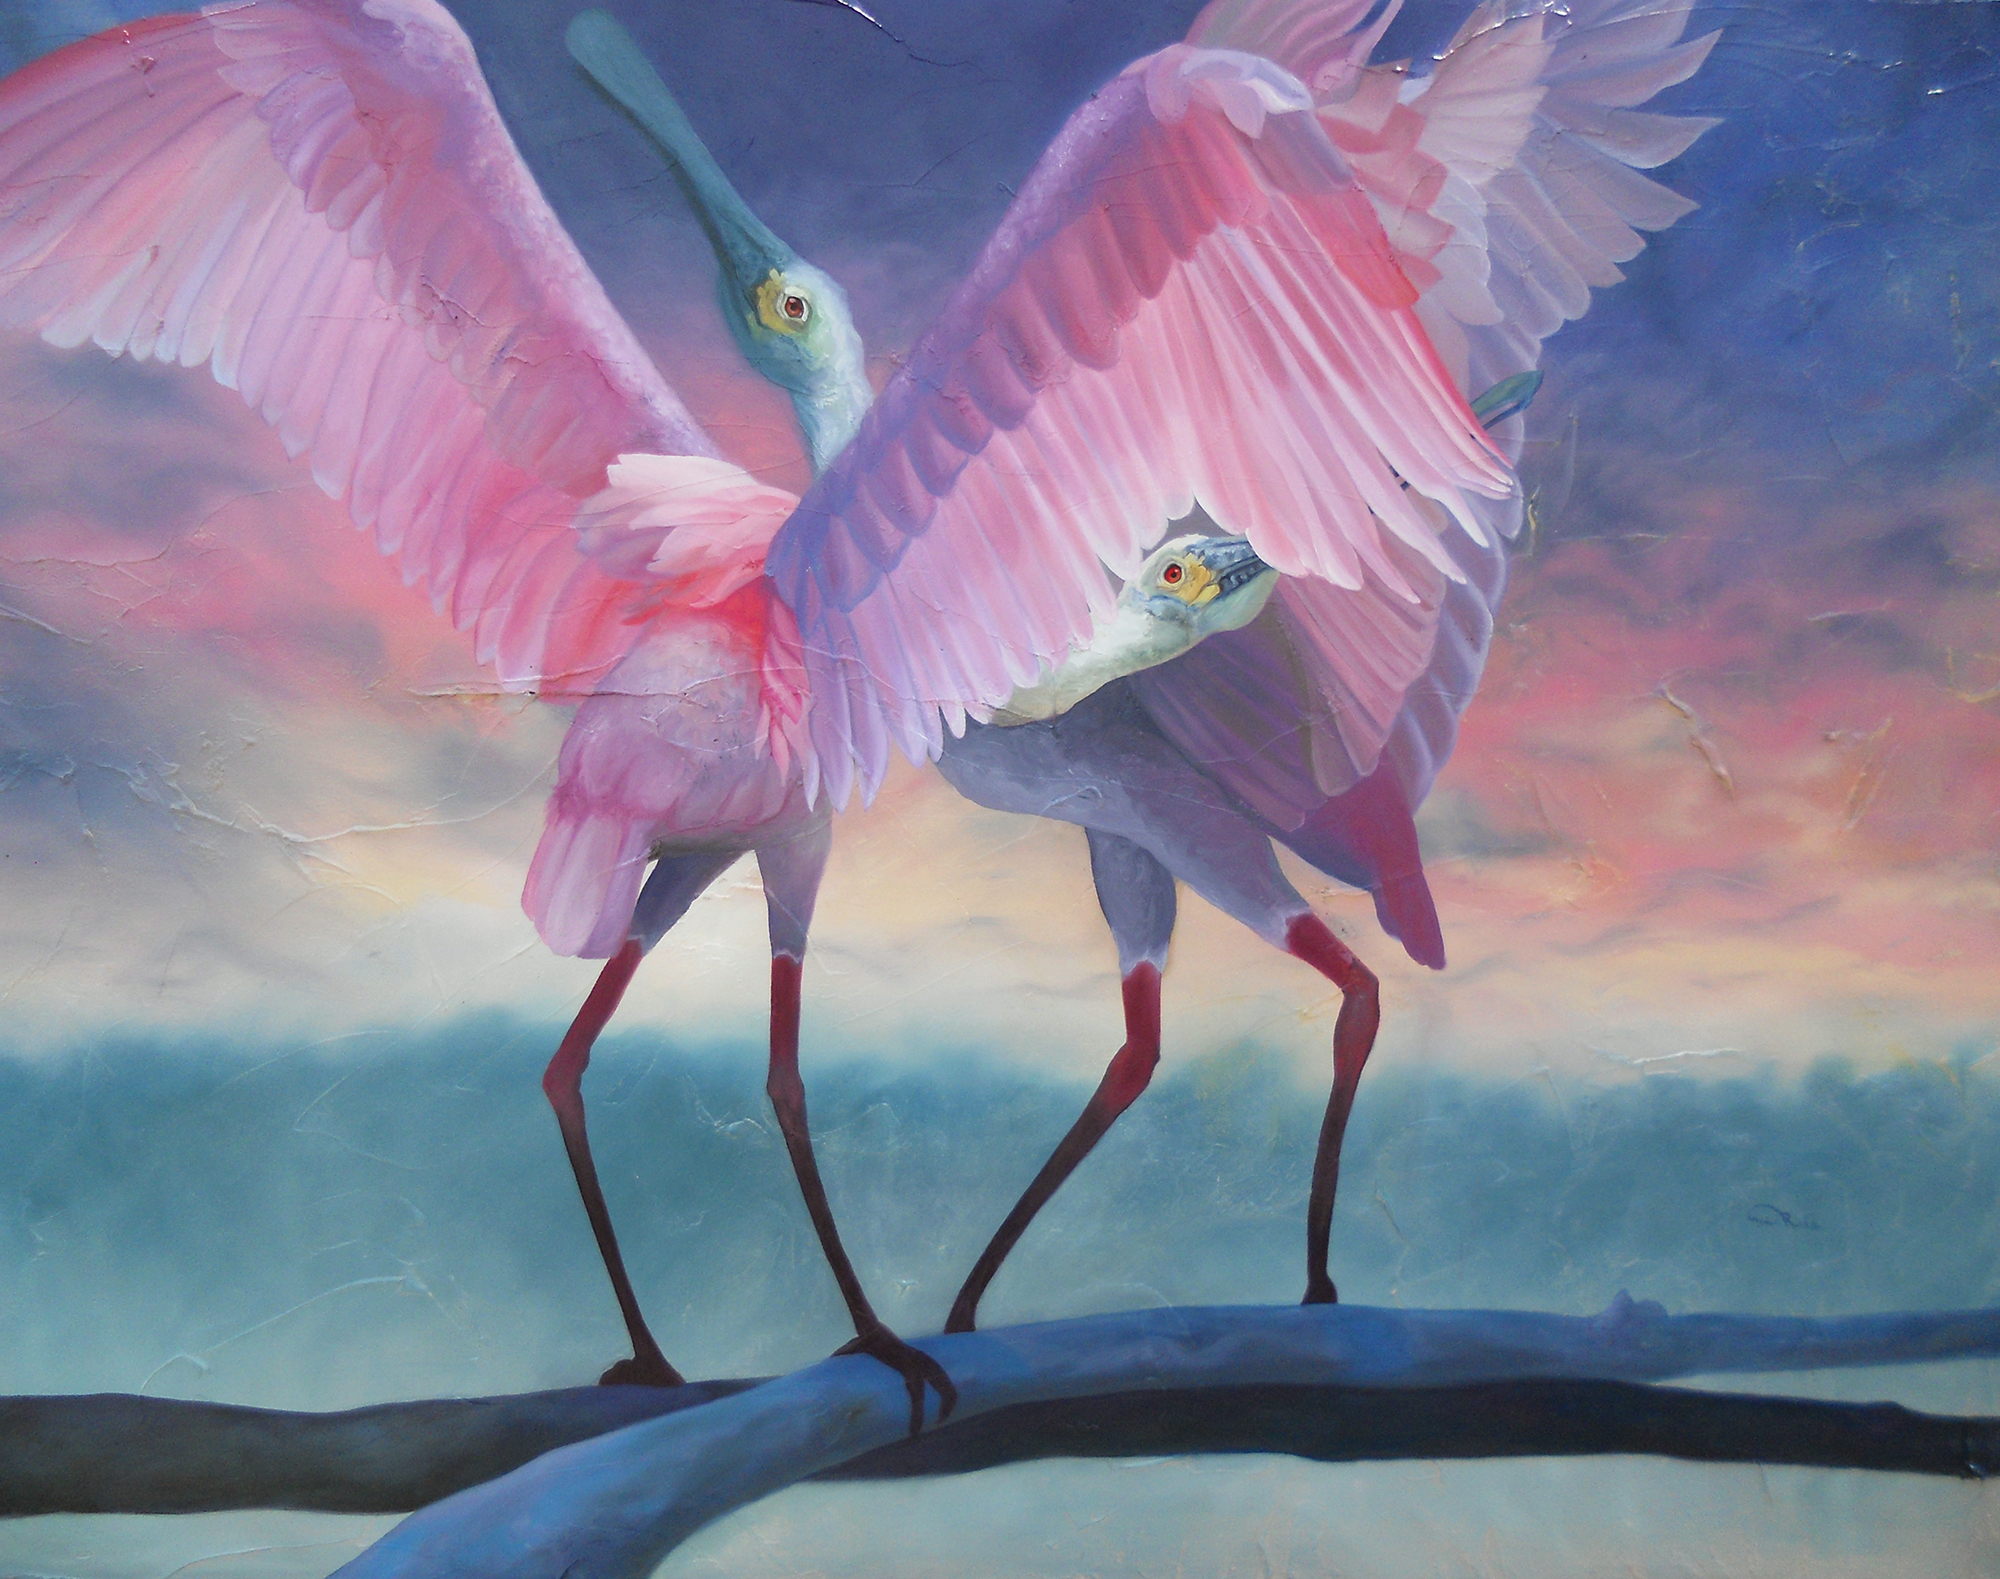 """Private Chatter"" - Roseate Spoonbills Speaking with Exaggerated Posturing - an oil painting original artwork by professional artist Allison Richter"